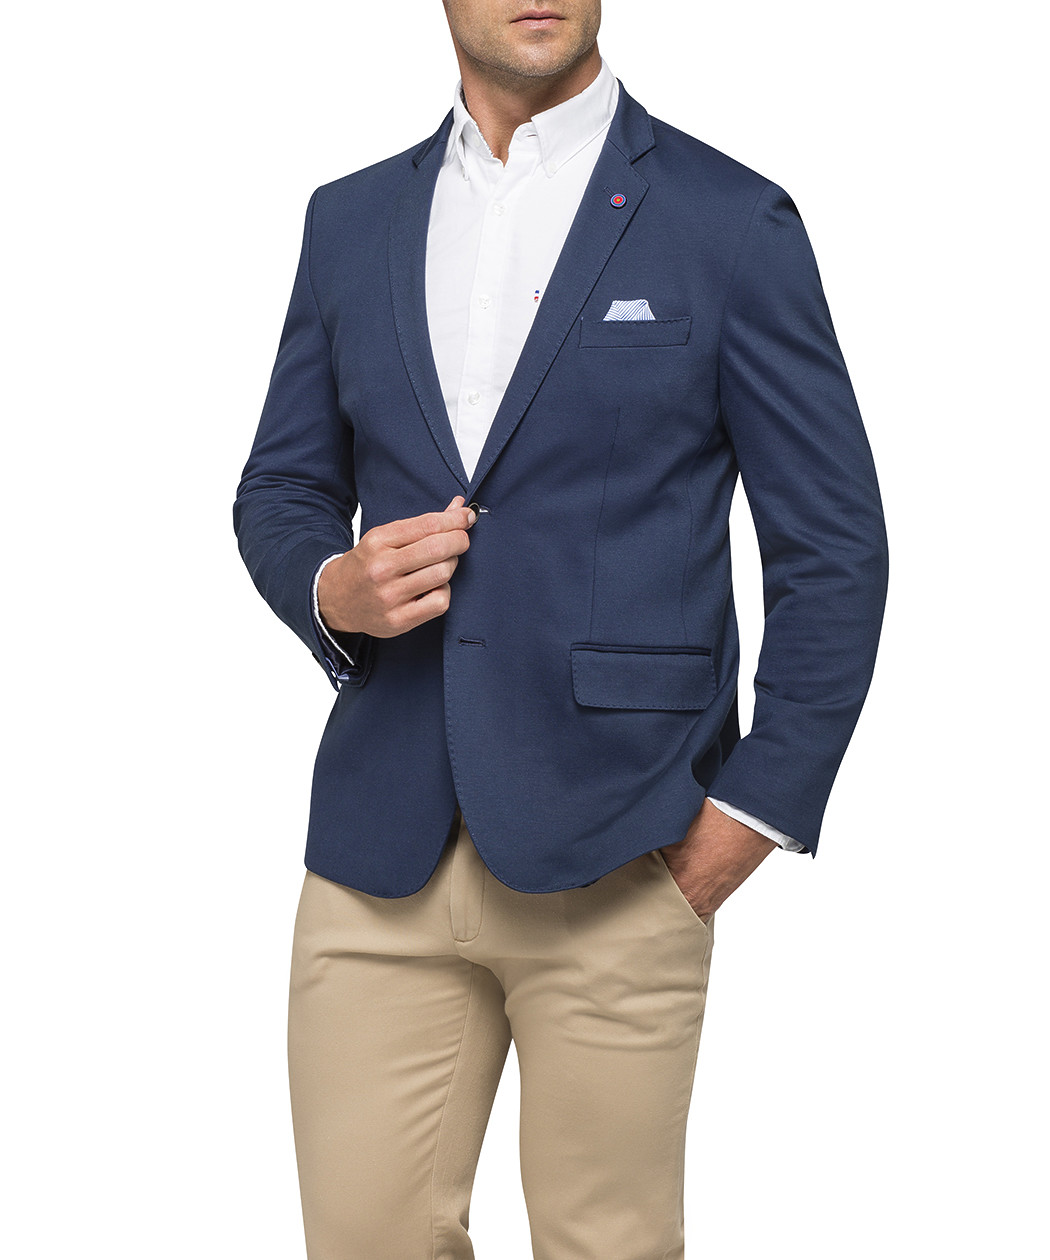 Van Heusen Mens Casual Sports Jacket Navy | Mens Casual | Van ...